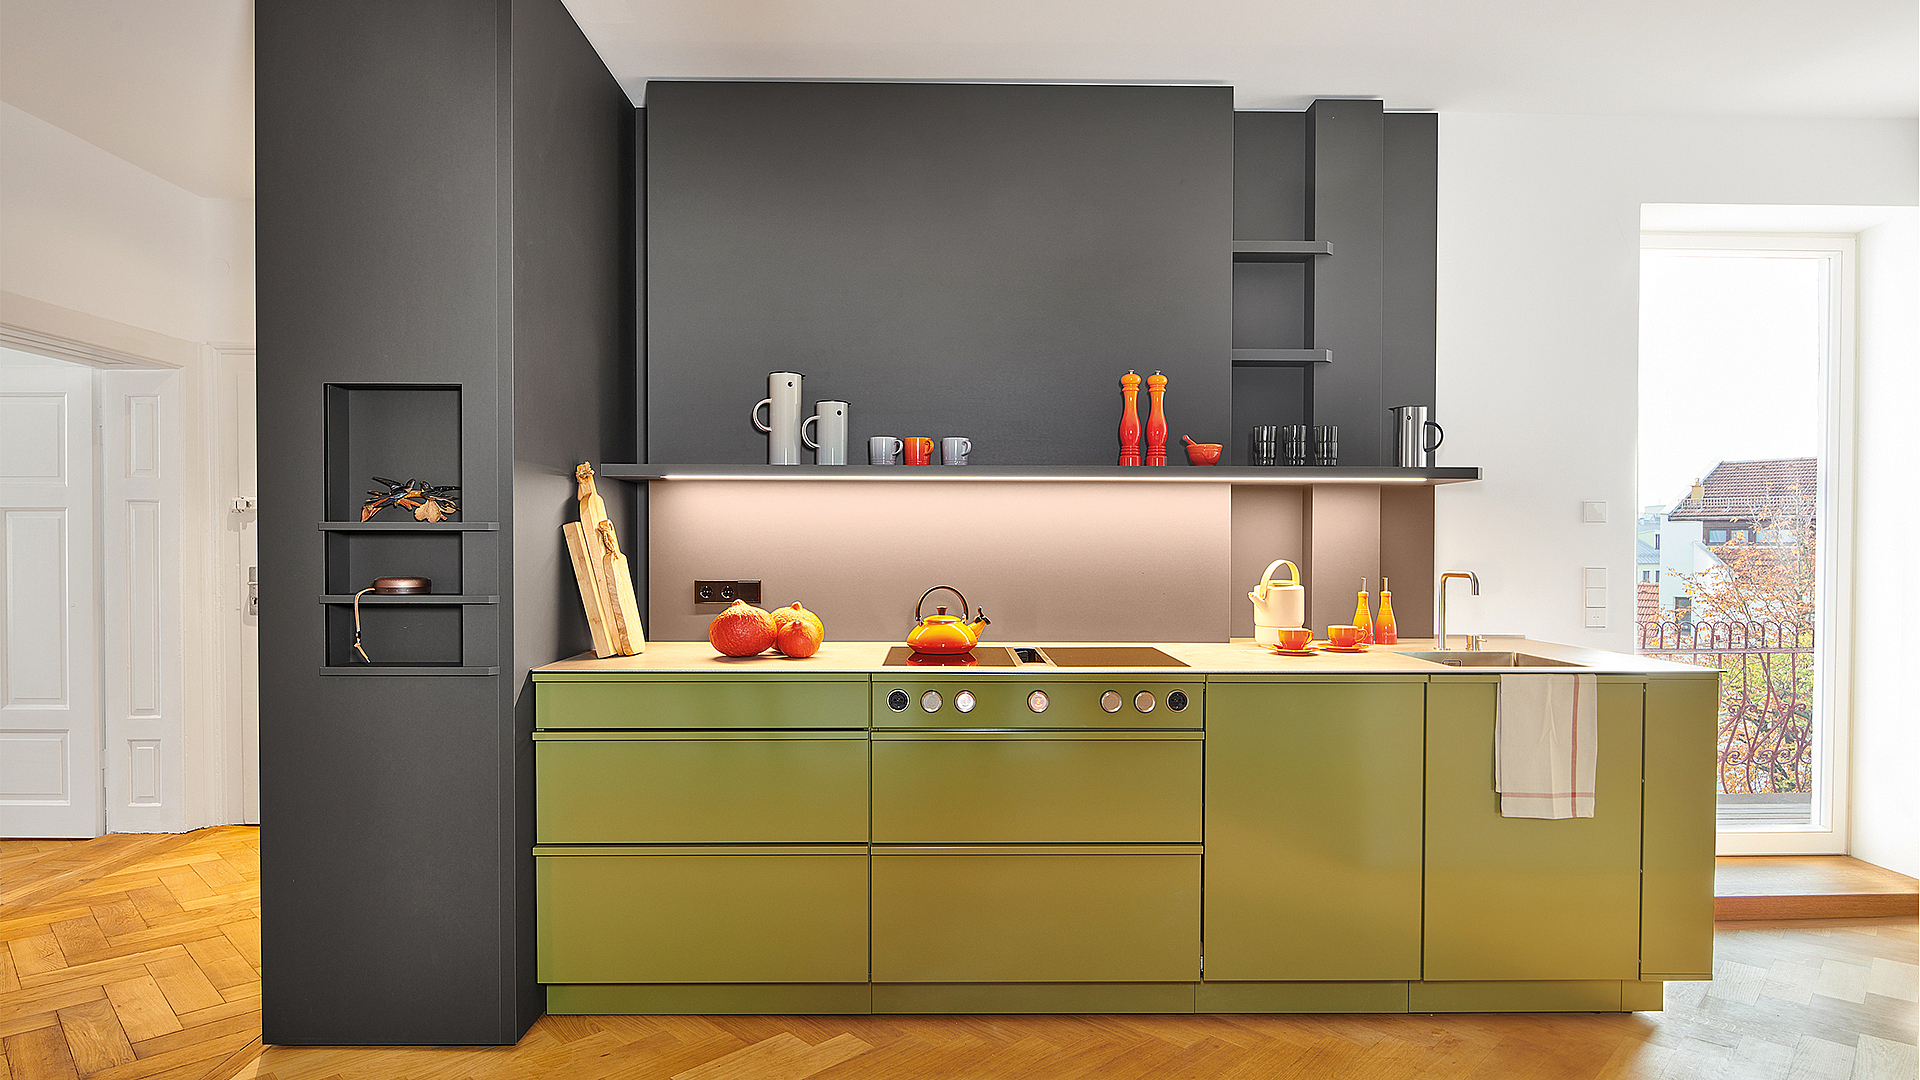 Steel kitchens as colourful as a vegetable garden